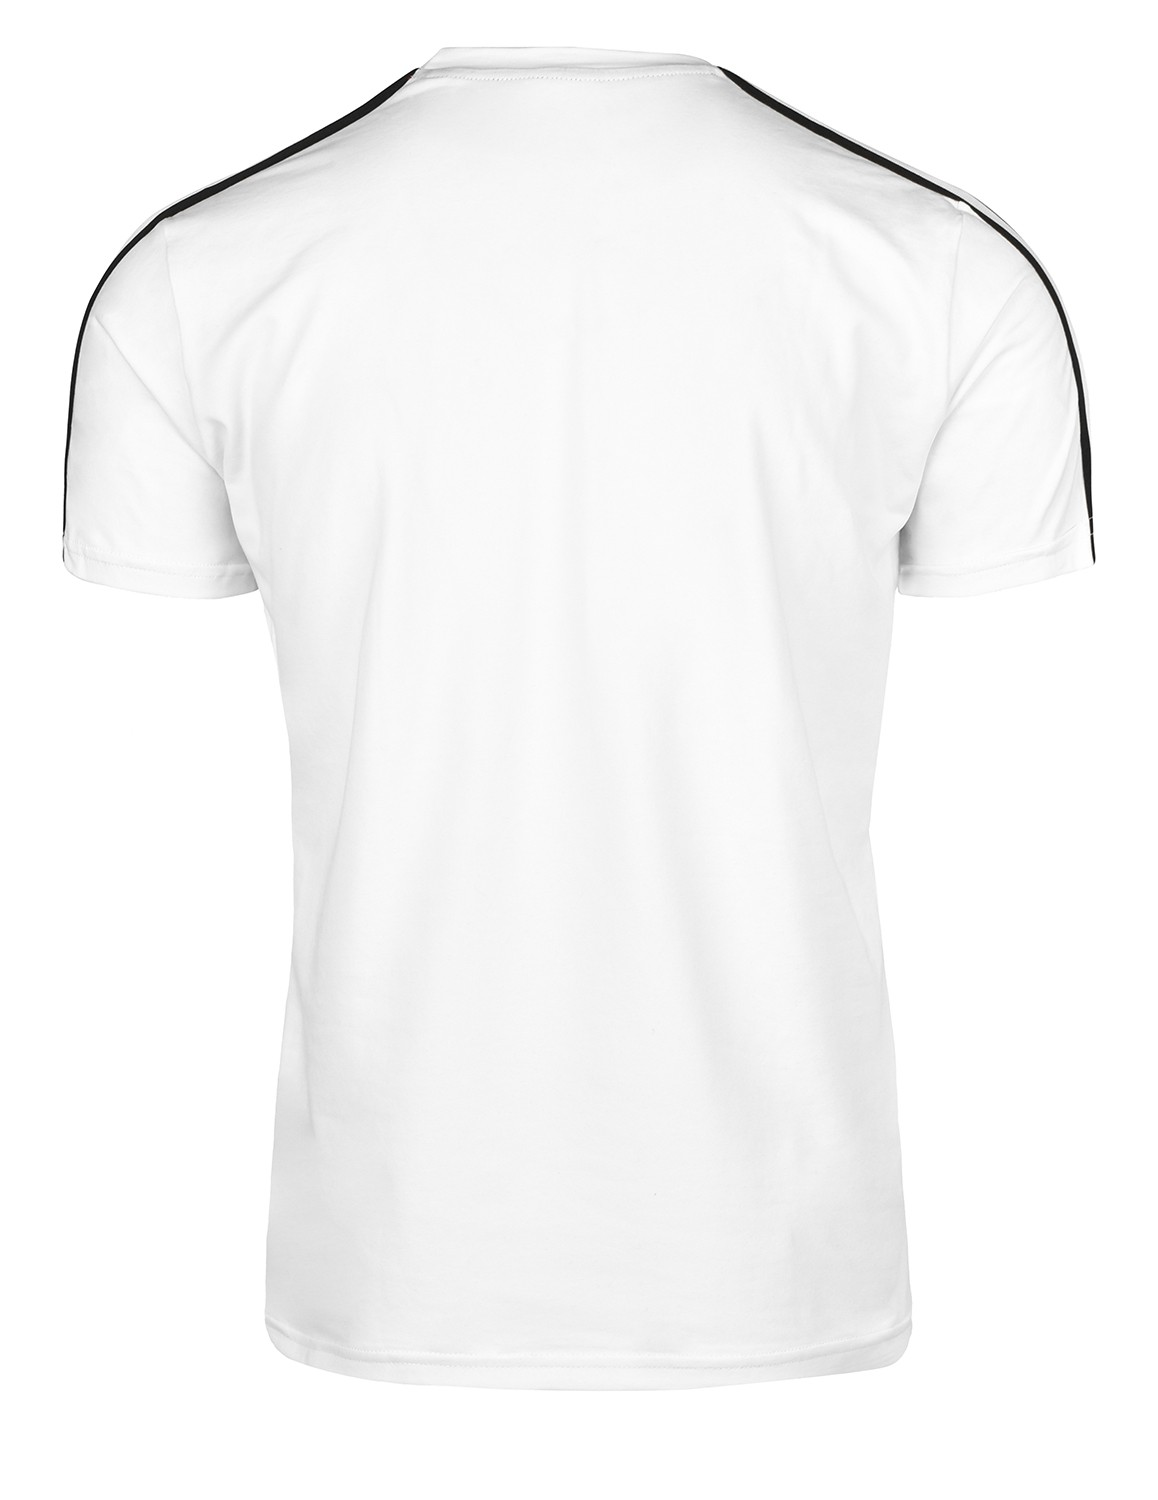 T-Shirt TRADEMARK B&W Edition White